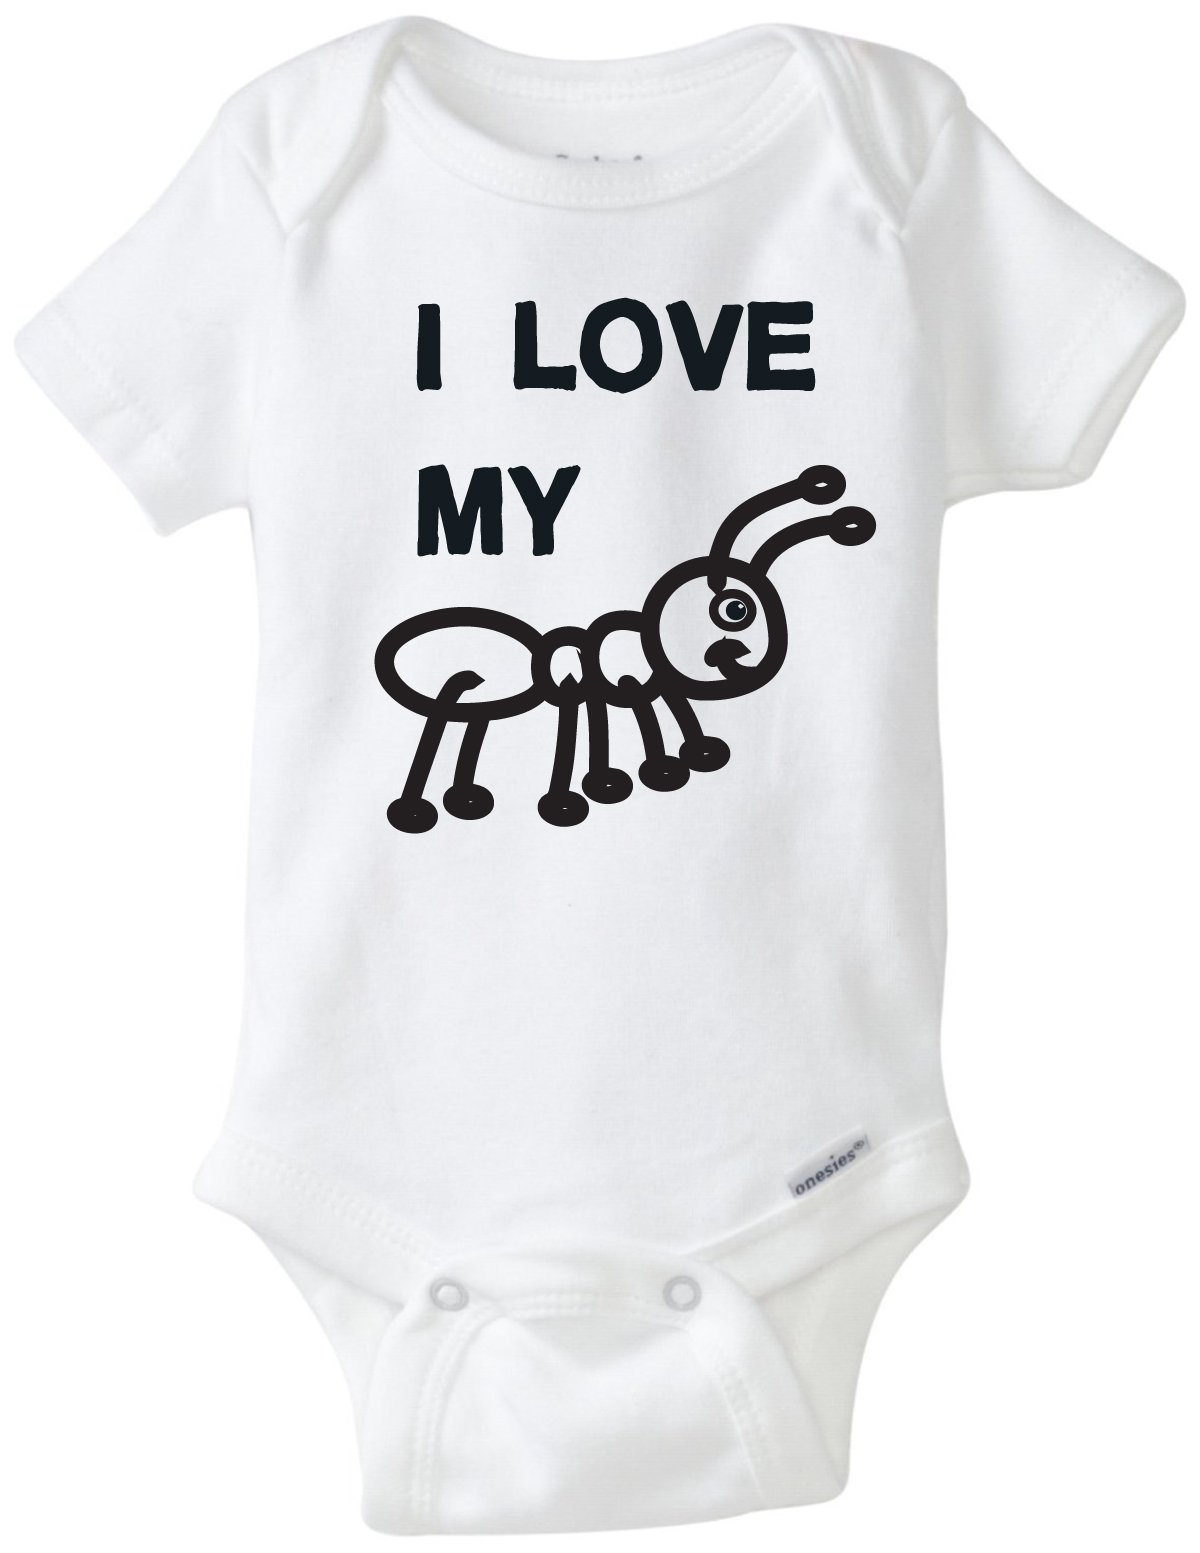 BLAKENREAG I Love My Aunt Funny Baby Onesie Baby Boy Girl Clothes Bodysuit (12 Month)